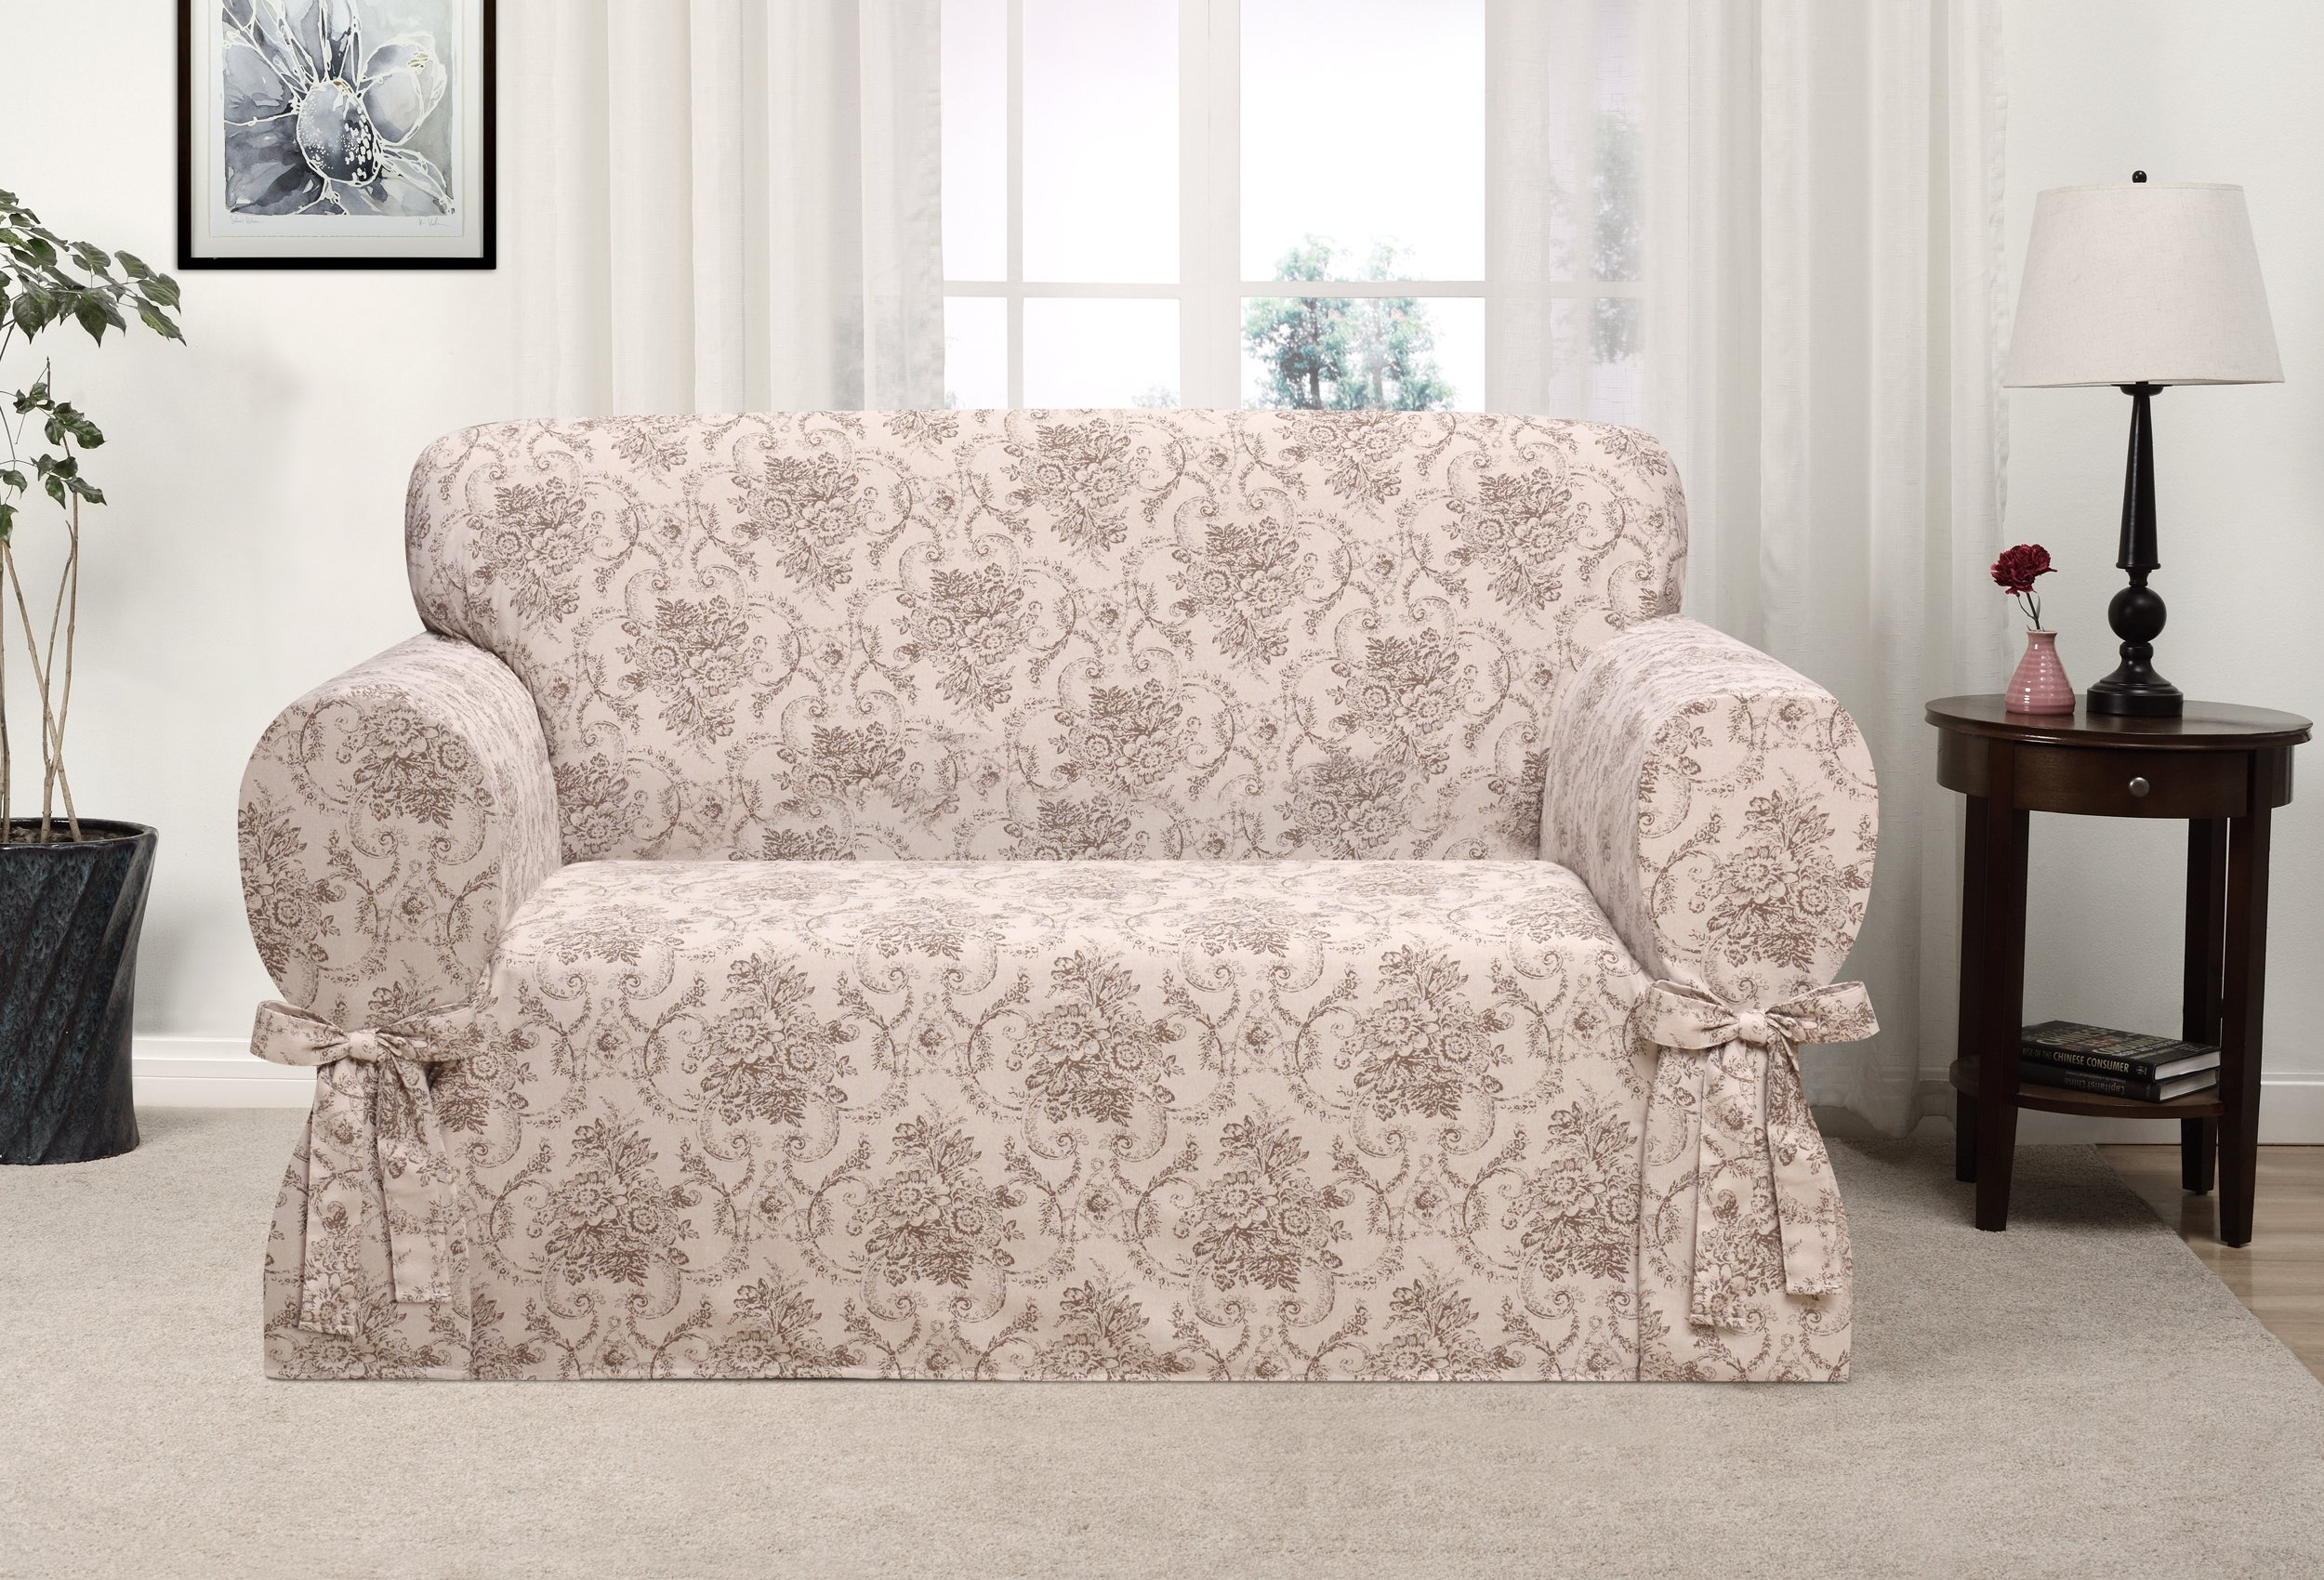 Madison Chateau Slipcover, Loveseat, Taupe